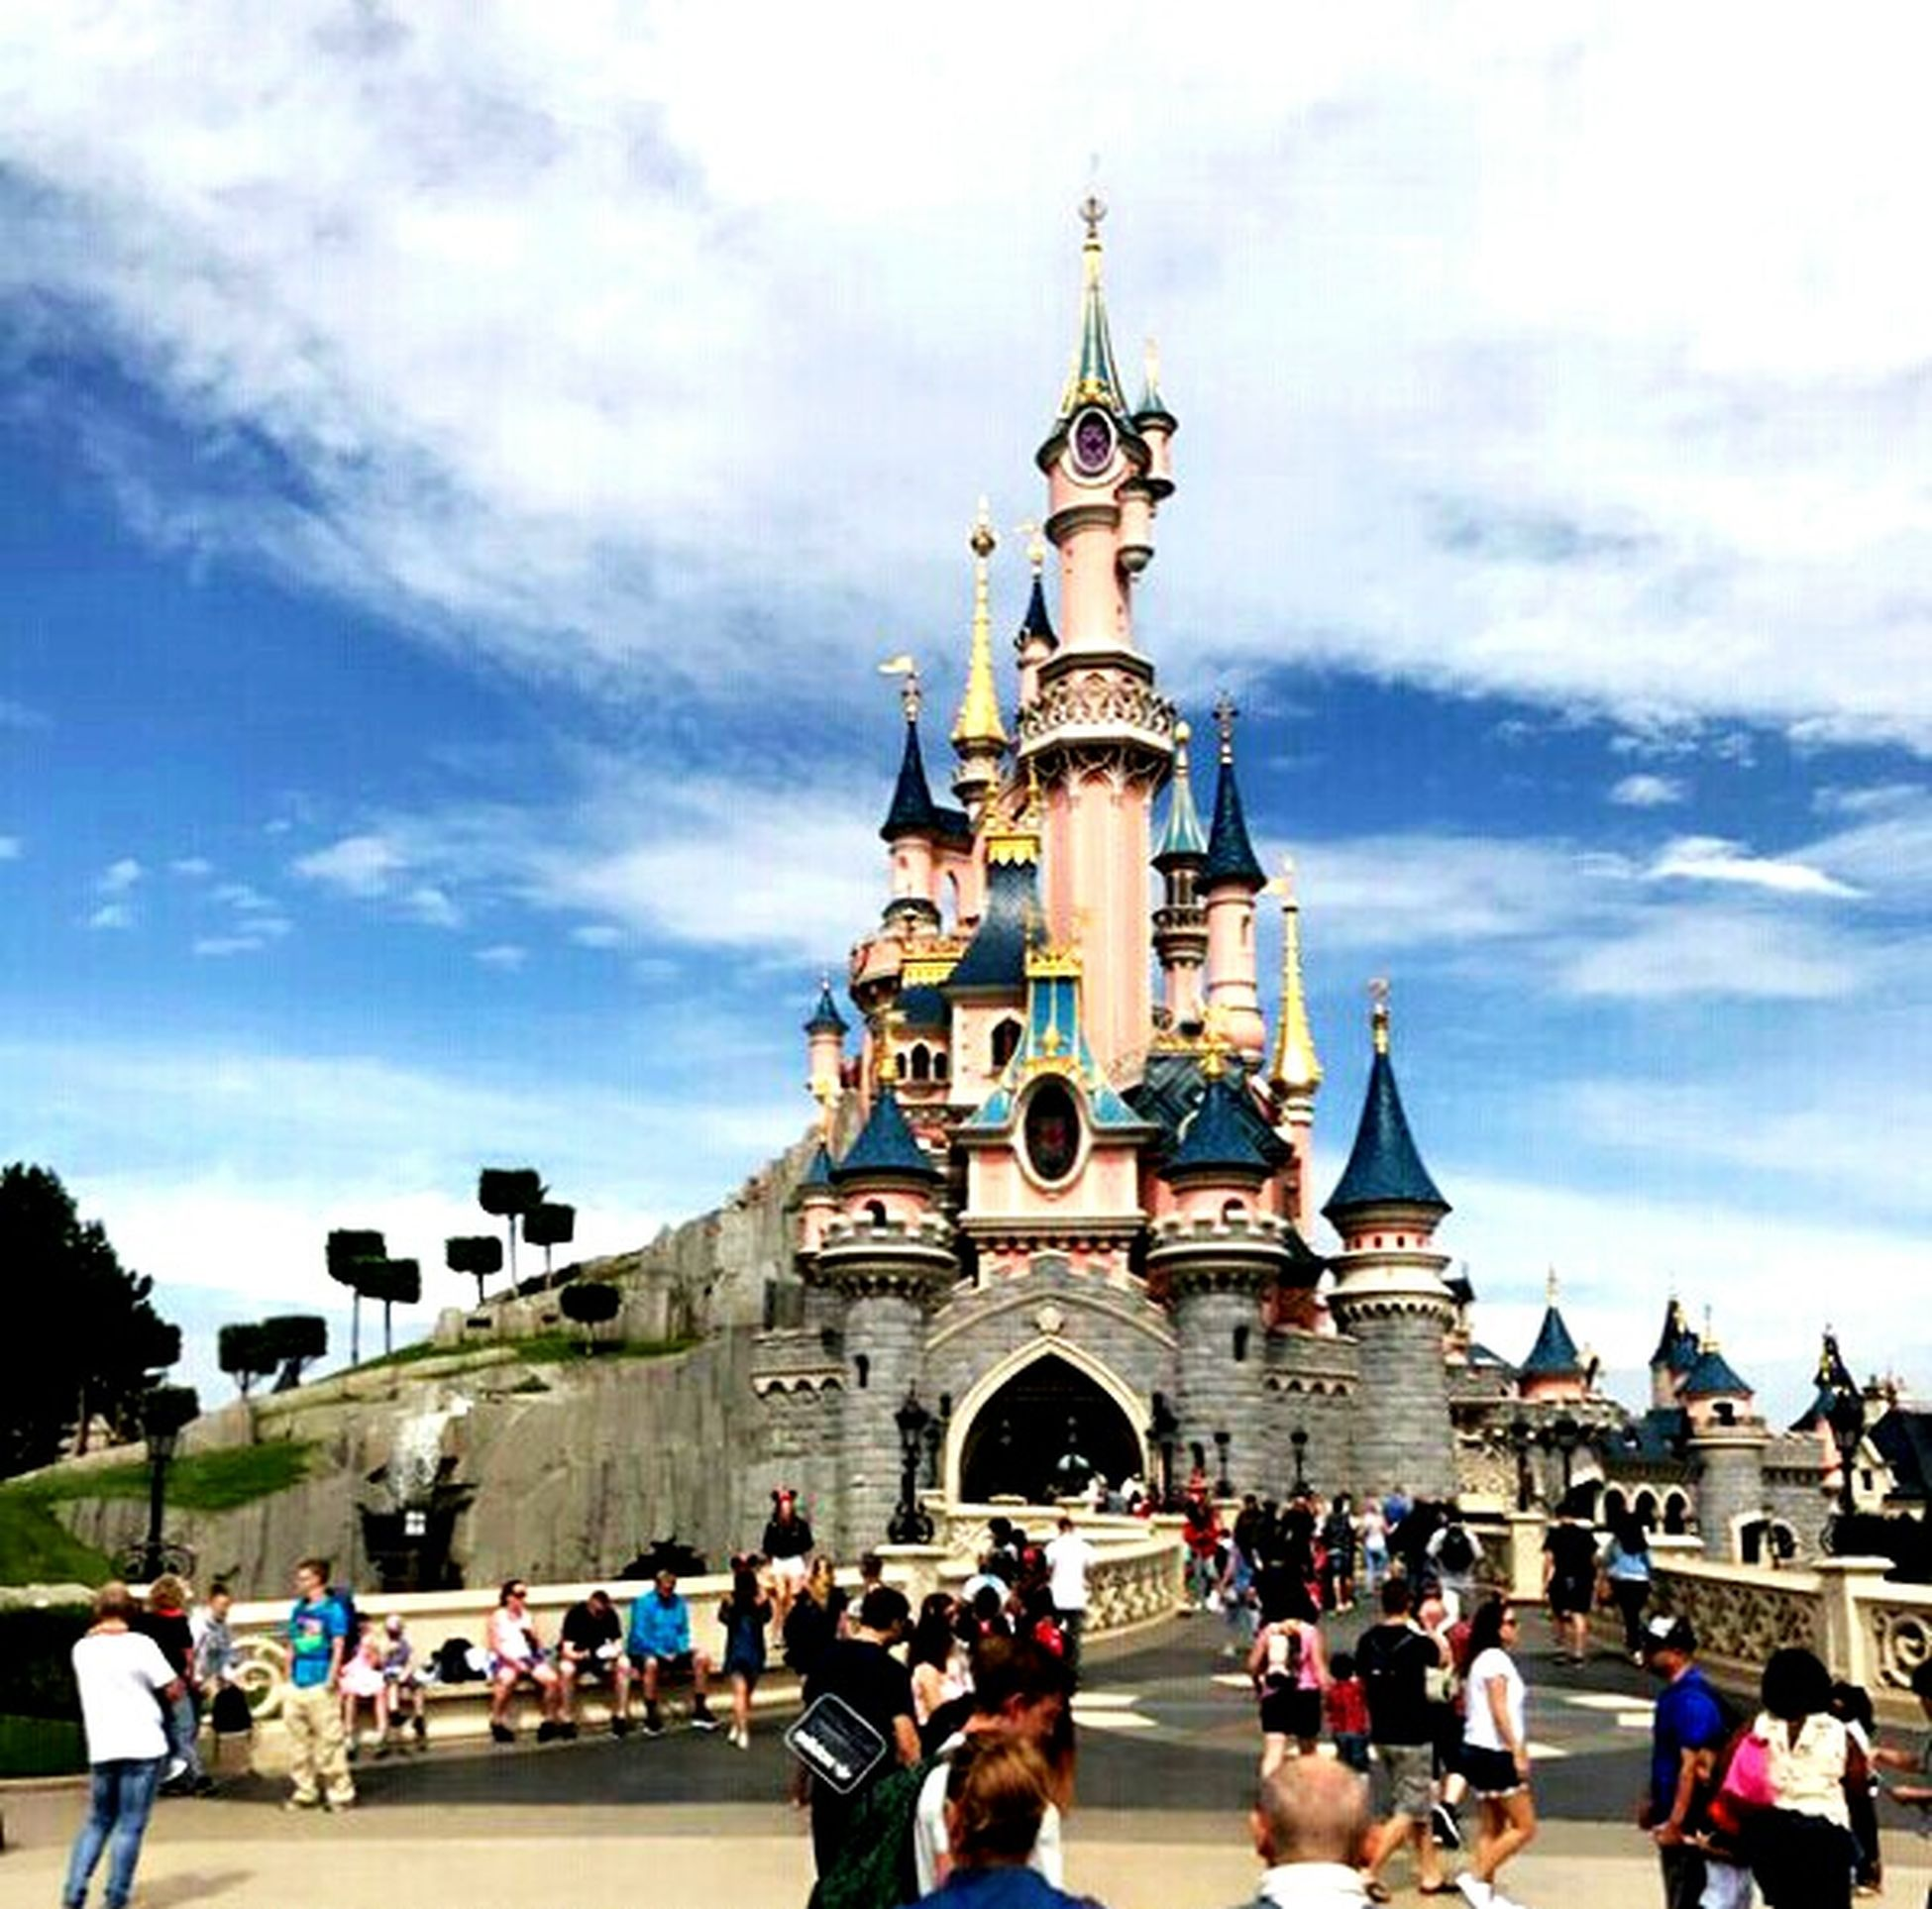 Paris Disneyland🙌😊🗼⛅🙈☝ Architecture Travel Destinations City Day Sunny Travel Paris, France  Summertime Photo Enjoyment Vacations Cloud - Sky Parisdisneyland Disneyland Paris DREAMTEAM First Eyeem Photo